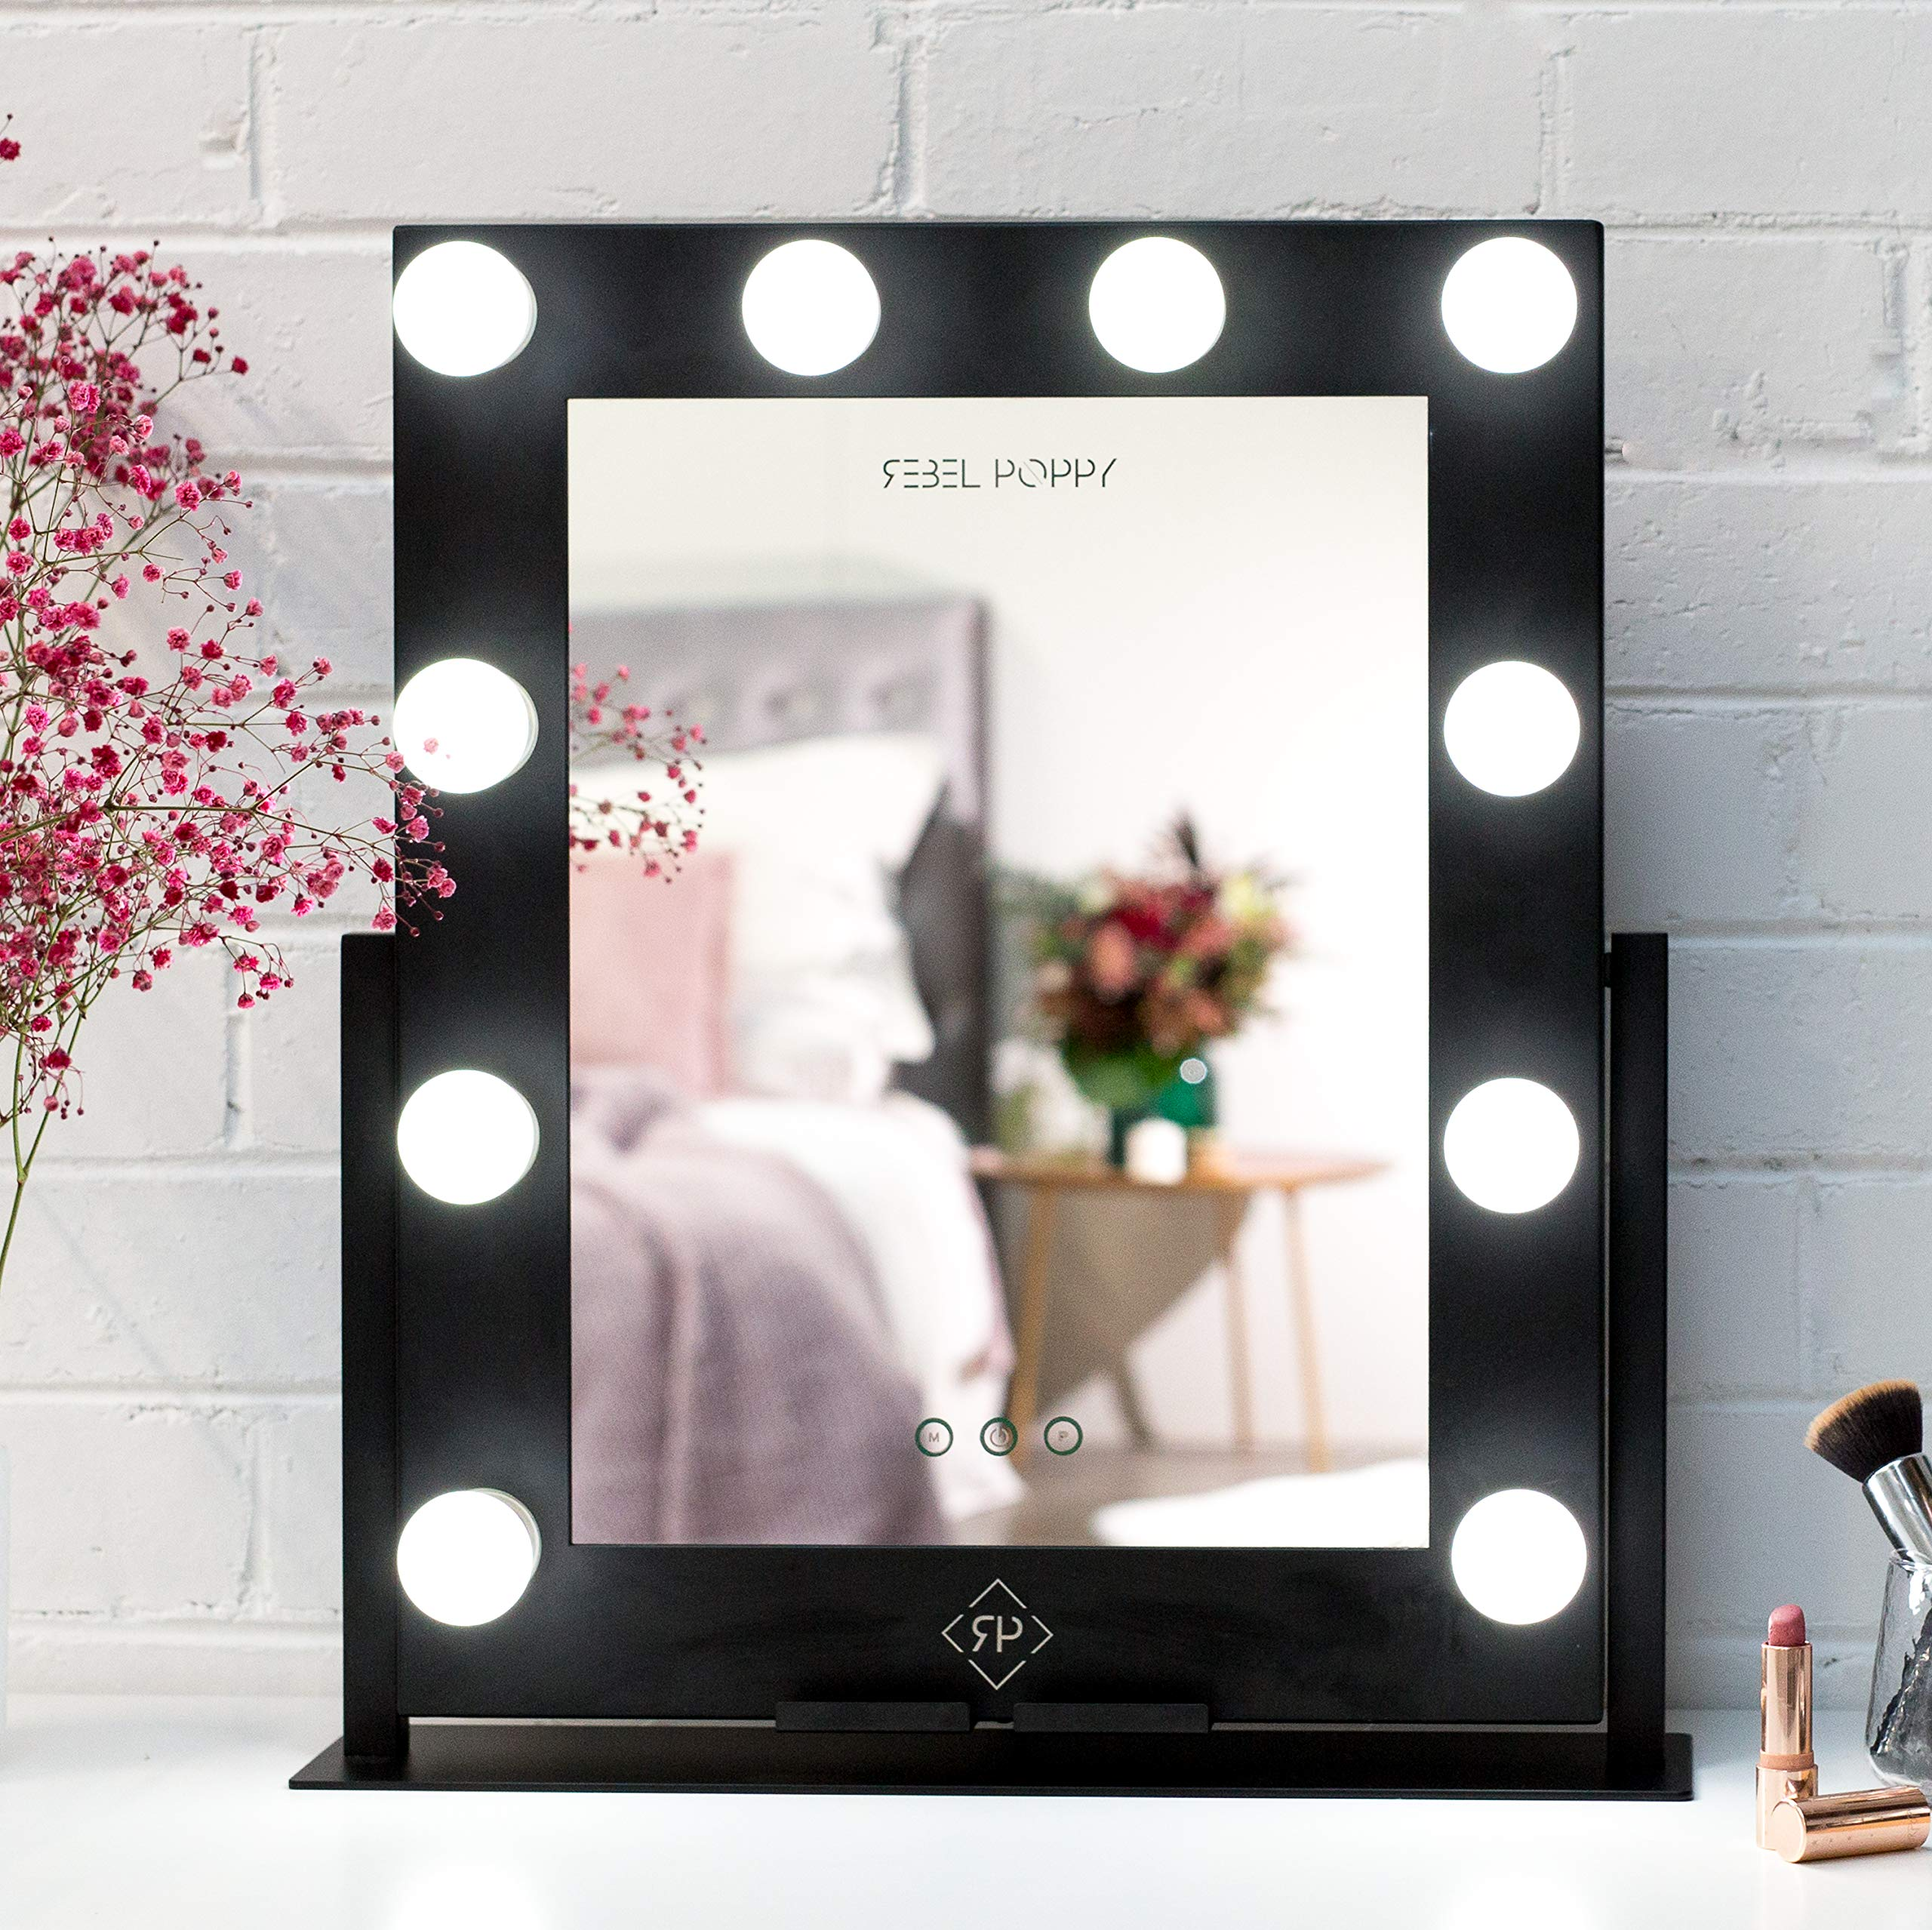 Rebel Poppy Lighted Vanity Mirror with Lights - Makeup Mirror with Phone Holder, 3 Colour Touch Control, LED Replaceable Screw In Bulbs, Hollywood Style Lighted Makeup Mirror, 21.5'' x 19'', Black, Glam by Rebel Poppy